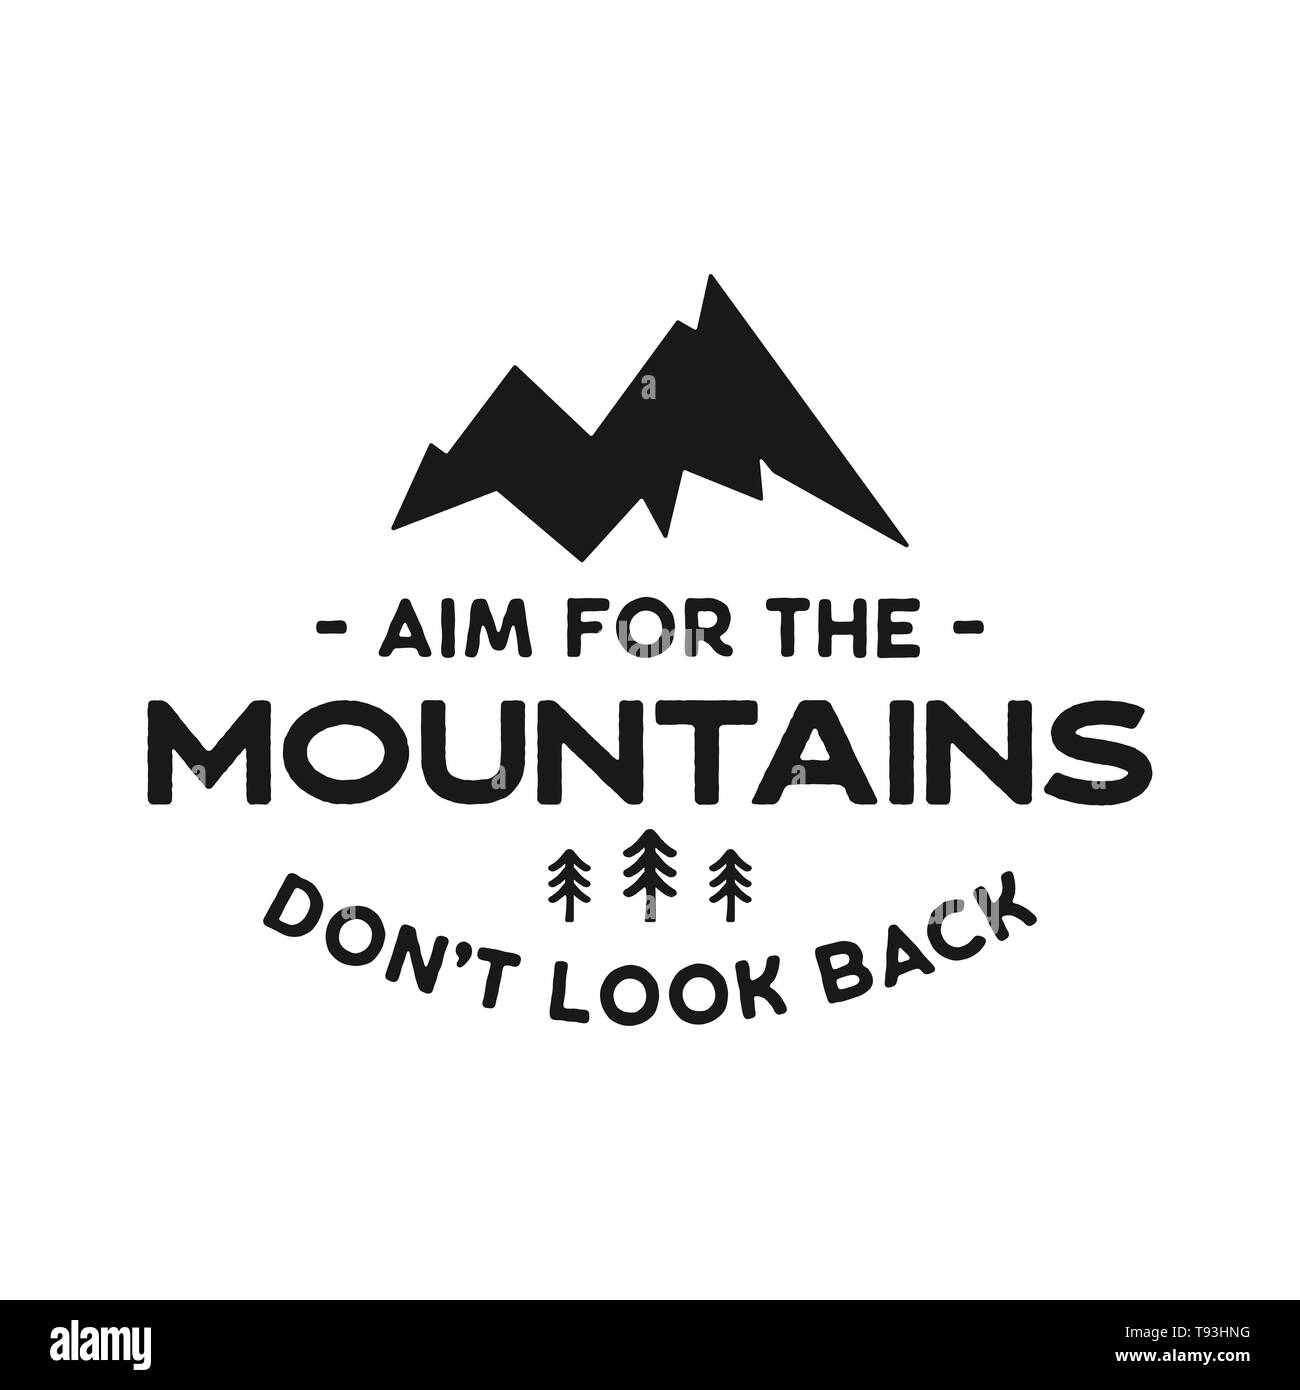 Mountain adventure badge with quote - Aim for the Mountains. Silhouette emblem in retro style. Travel logo, insignia. Stock vector hiking label isolat - Stock Image